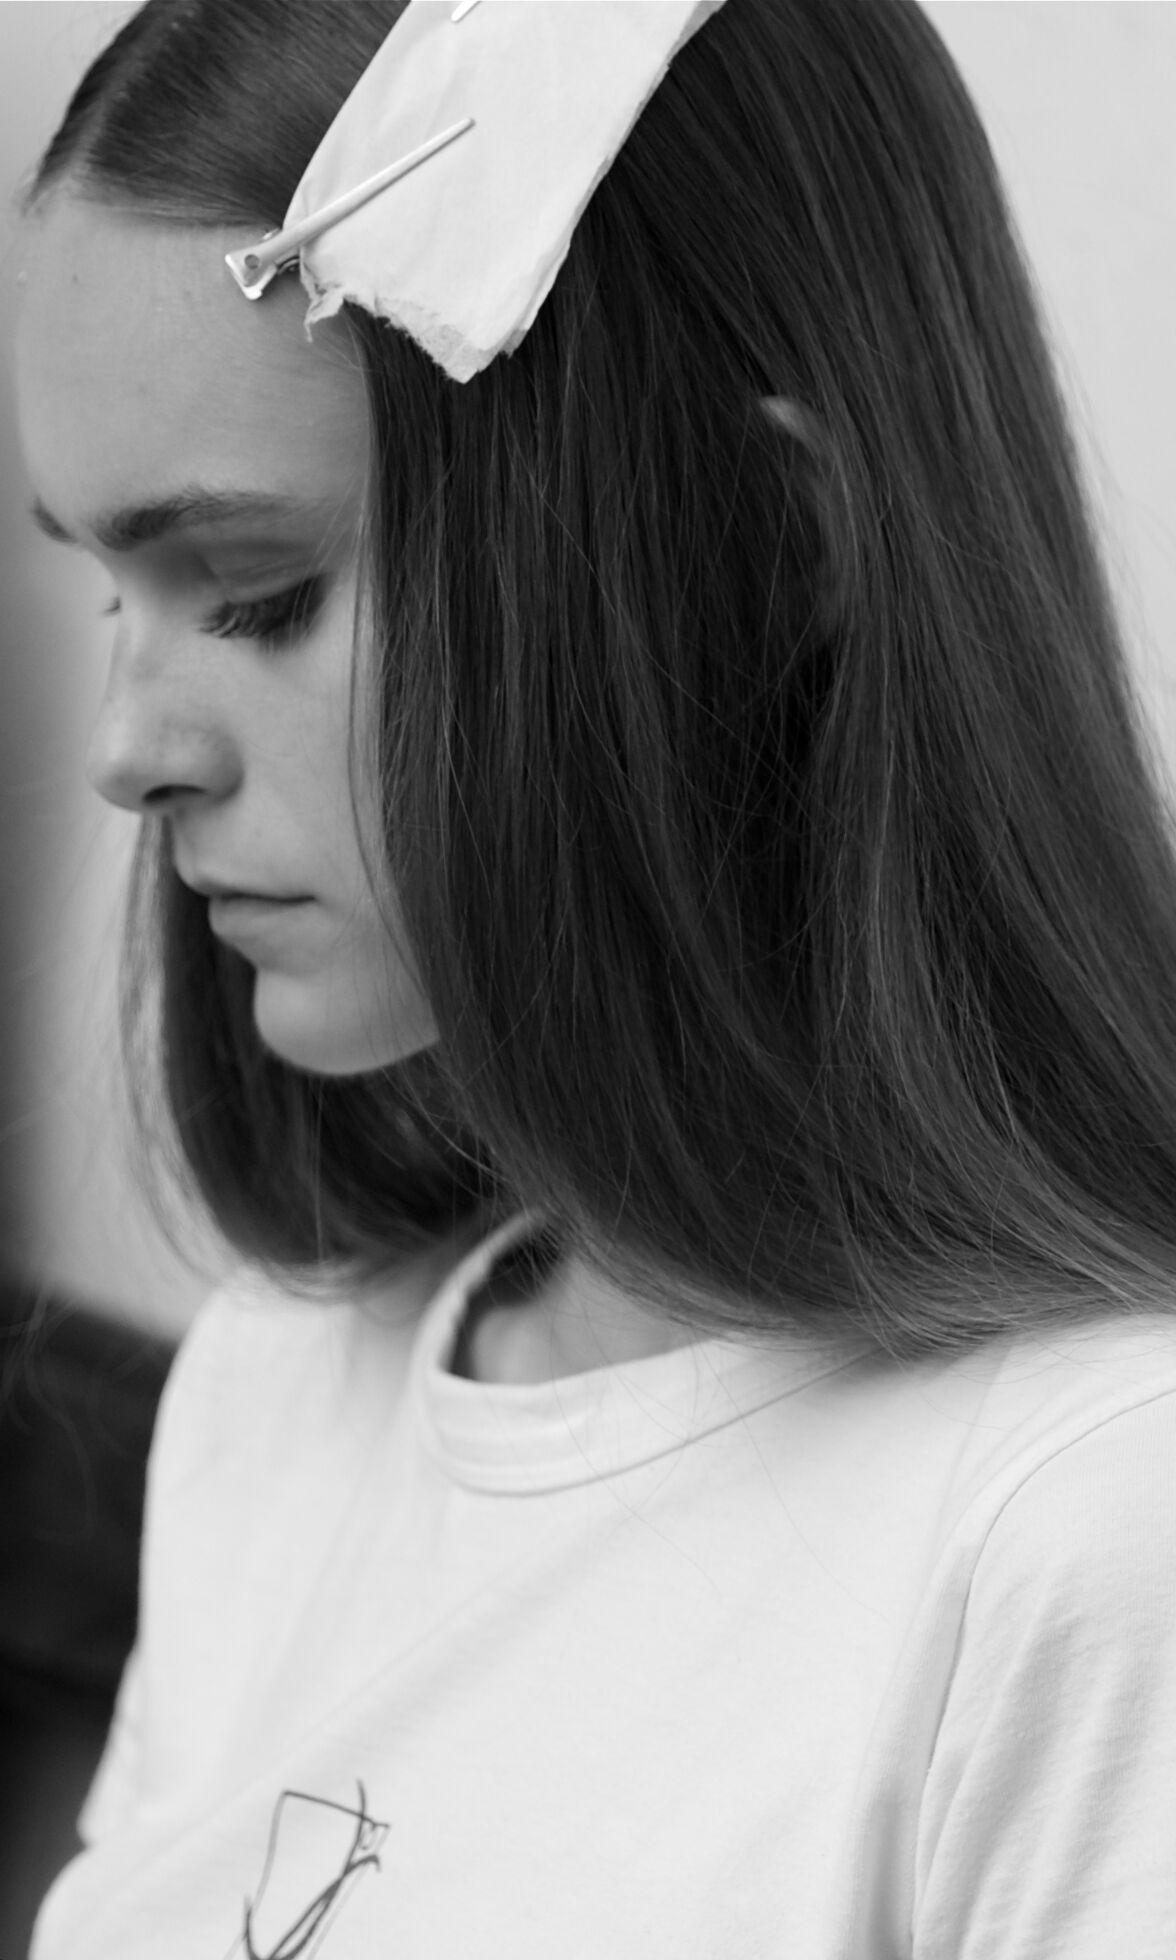 Women Backstage Damir Doma Hair Style